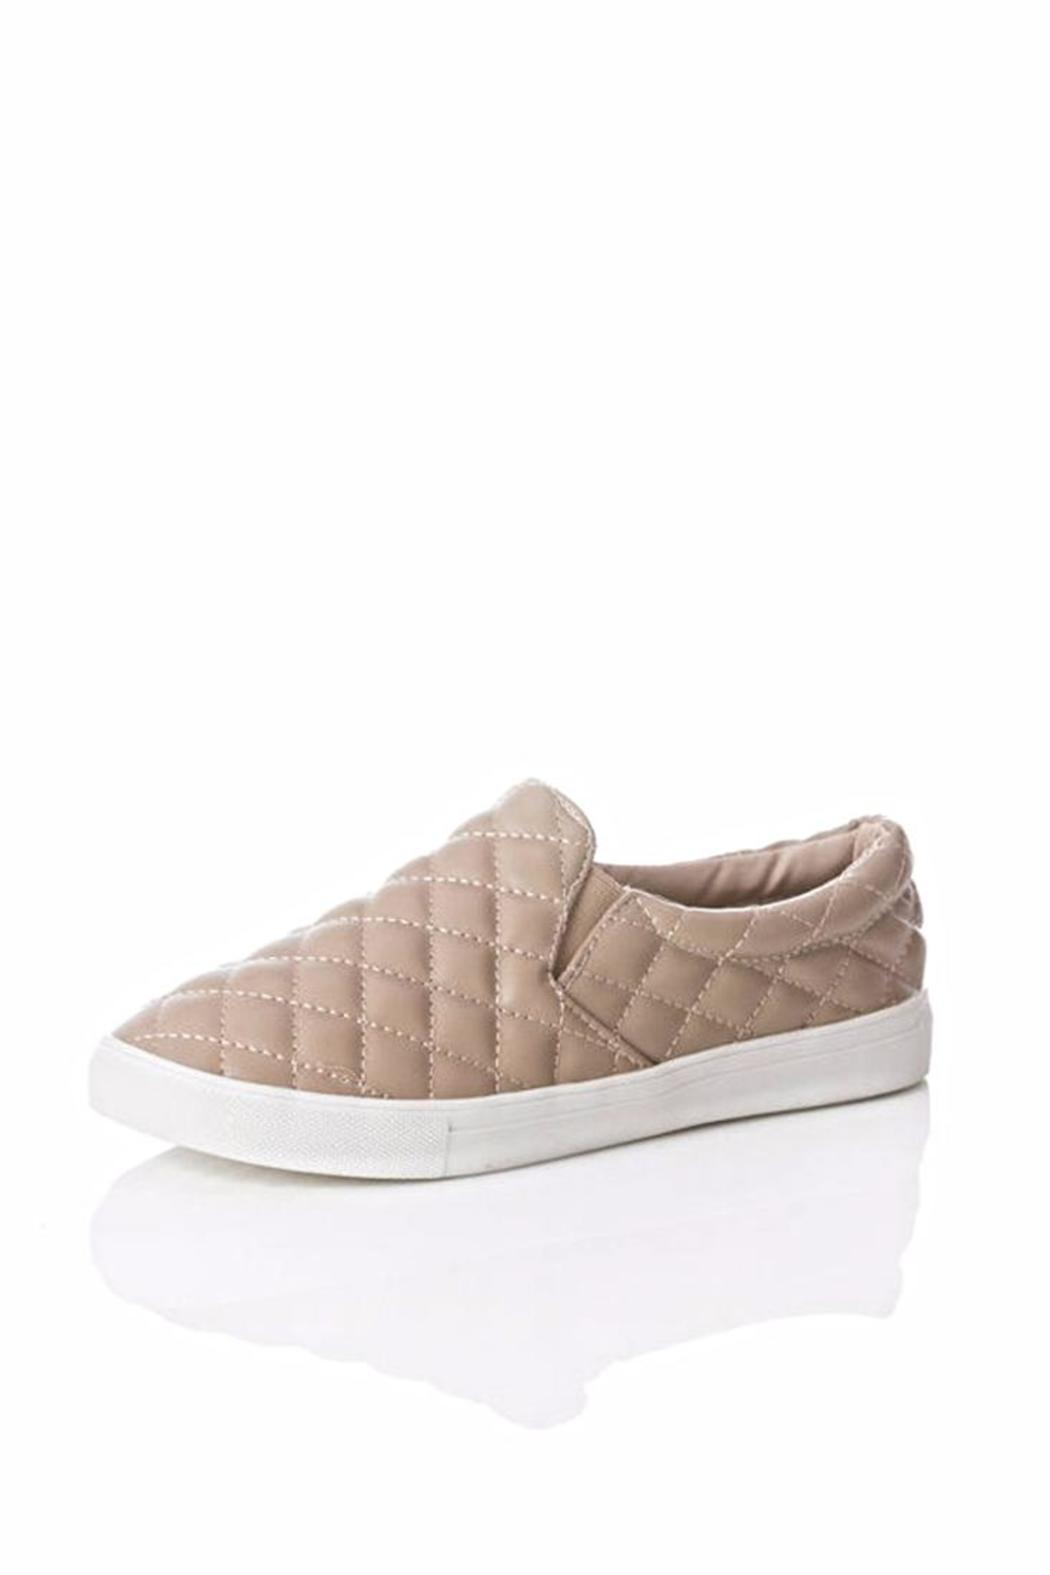 Free Love Boutique Desire Quilted Kicks - Main Image